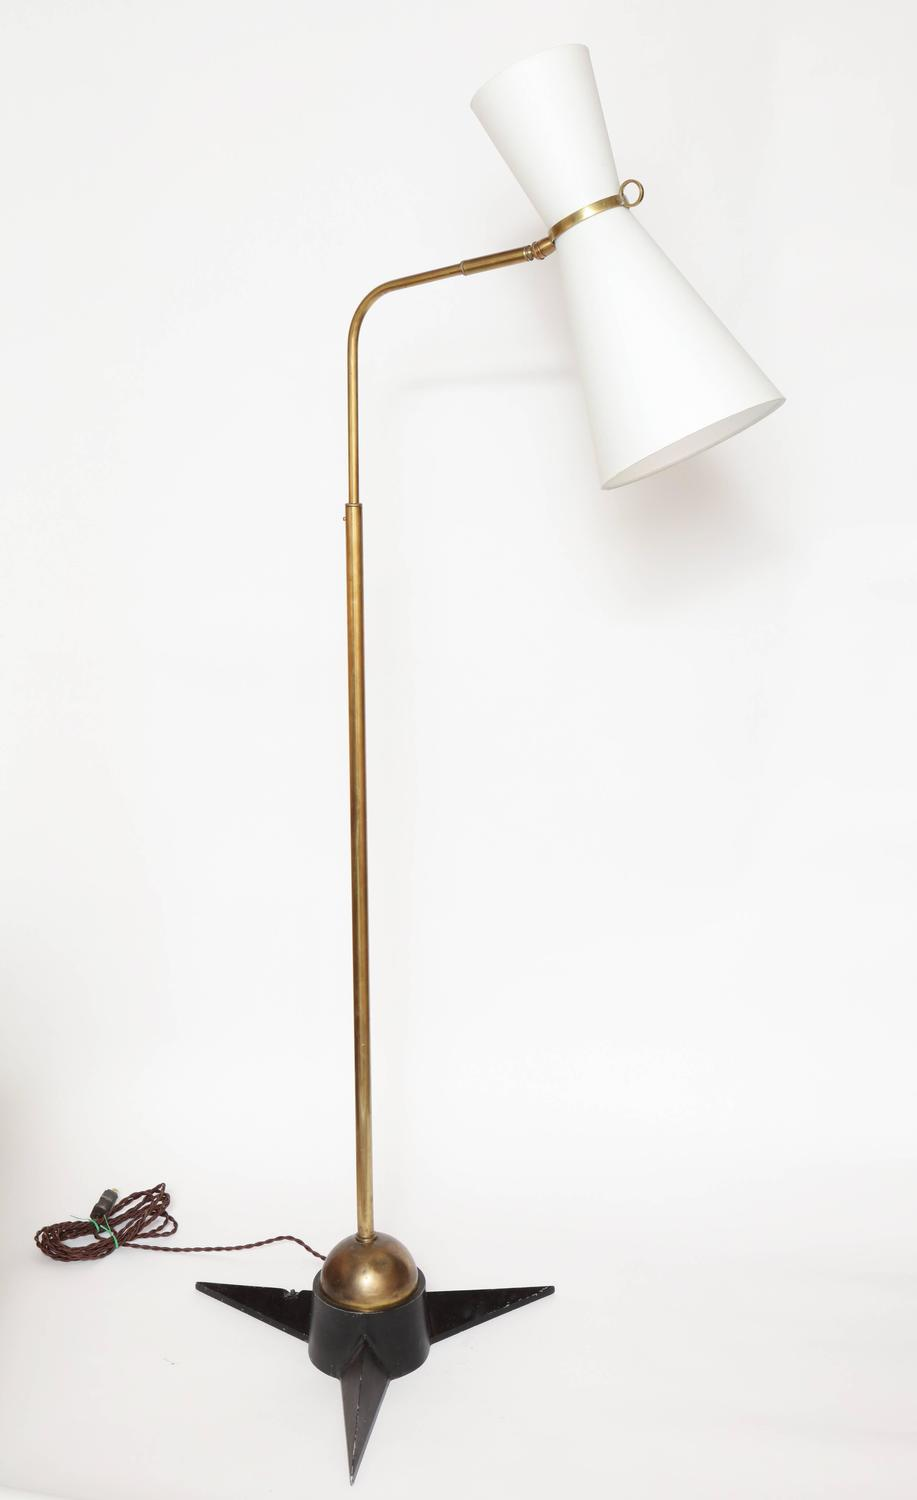 Robert Mathieu Articulated Floor Lamp 1950s France For